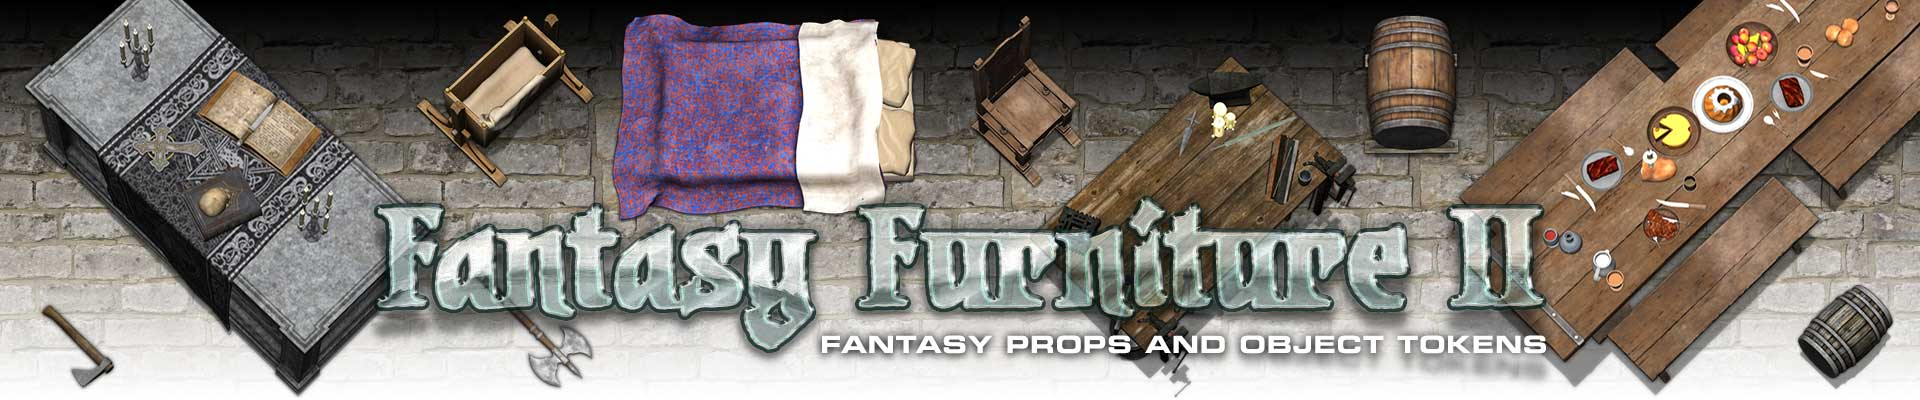 Fantasy Furniture II